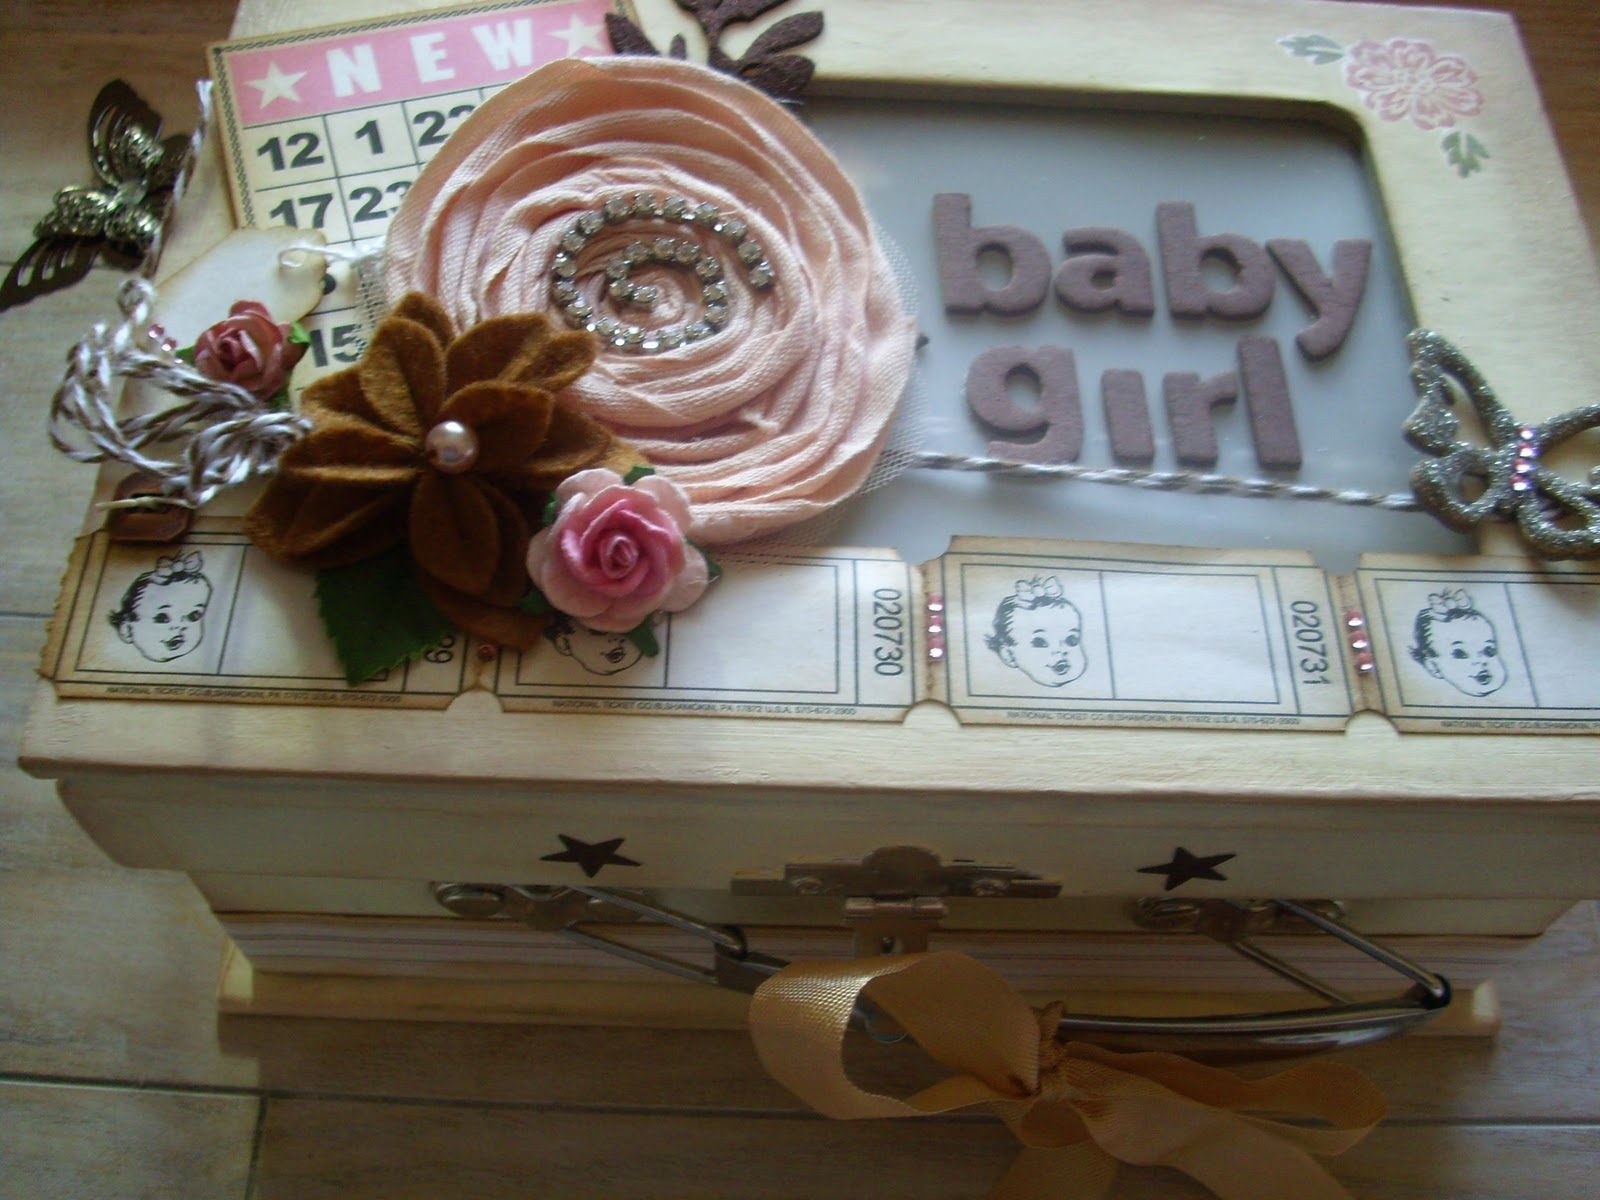 BrownPaperPackaging: Baby Shower Gifts and Decorations